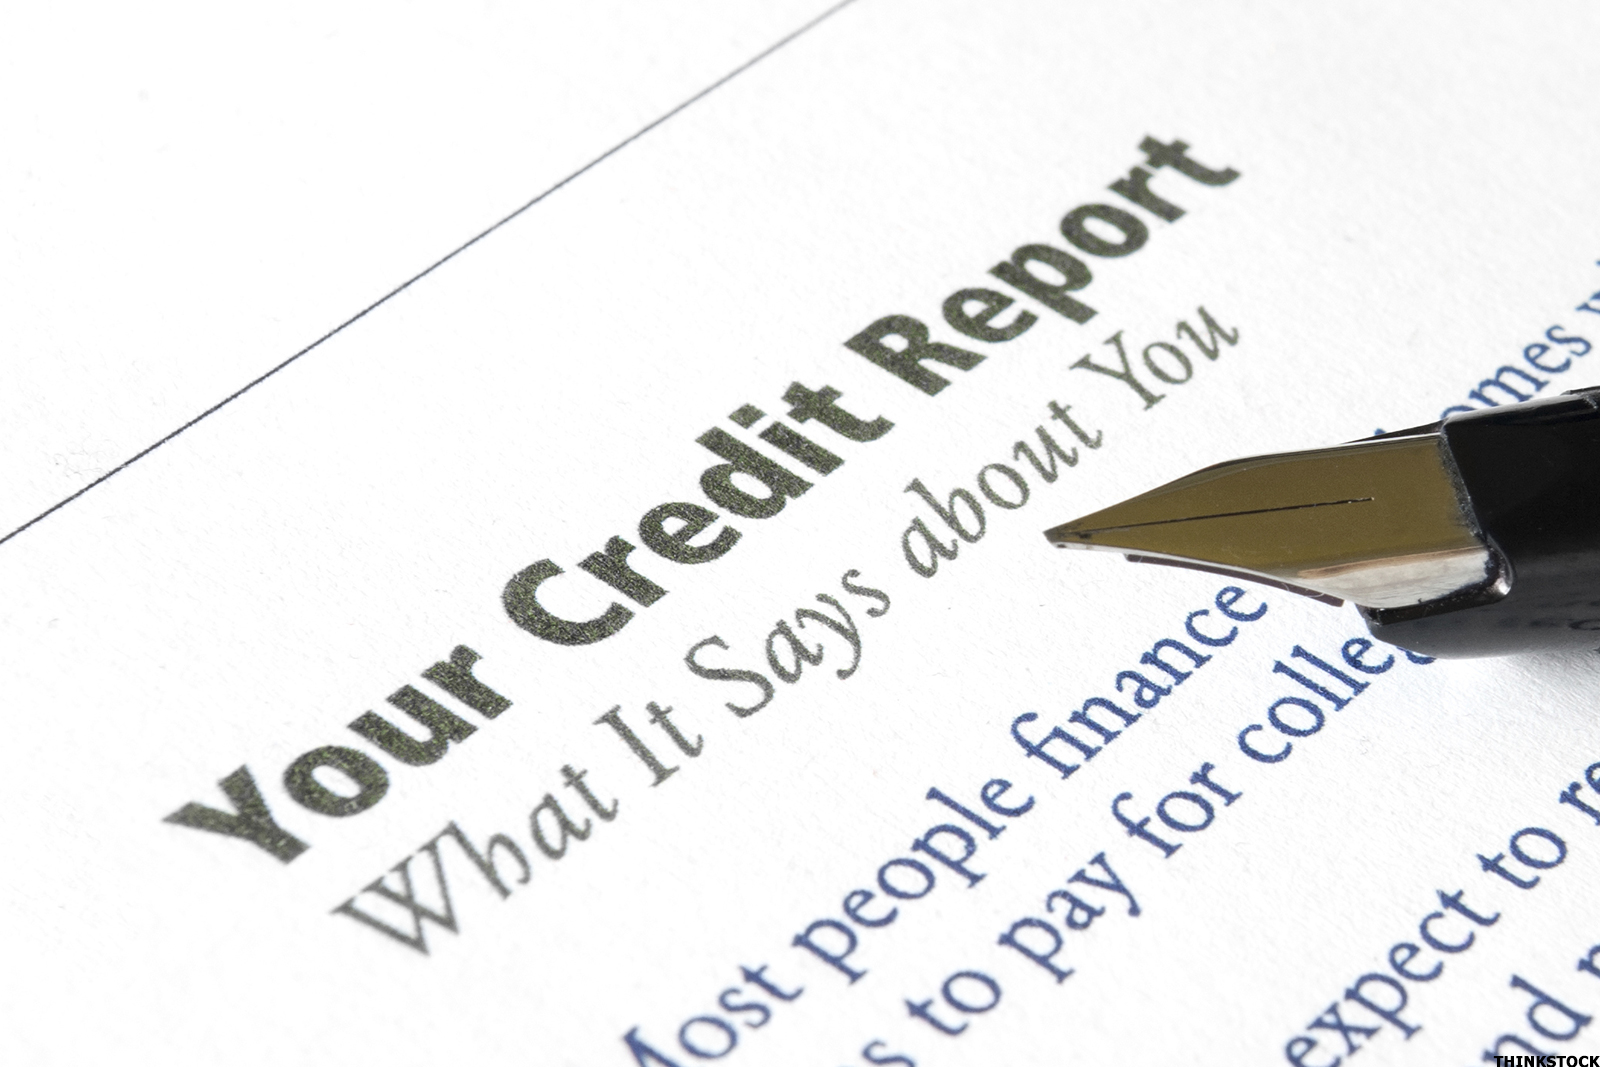 A Secret History of Credit Scores: Who Determined What Matters and Why